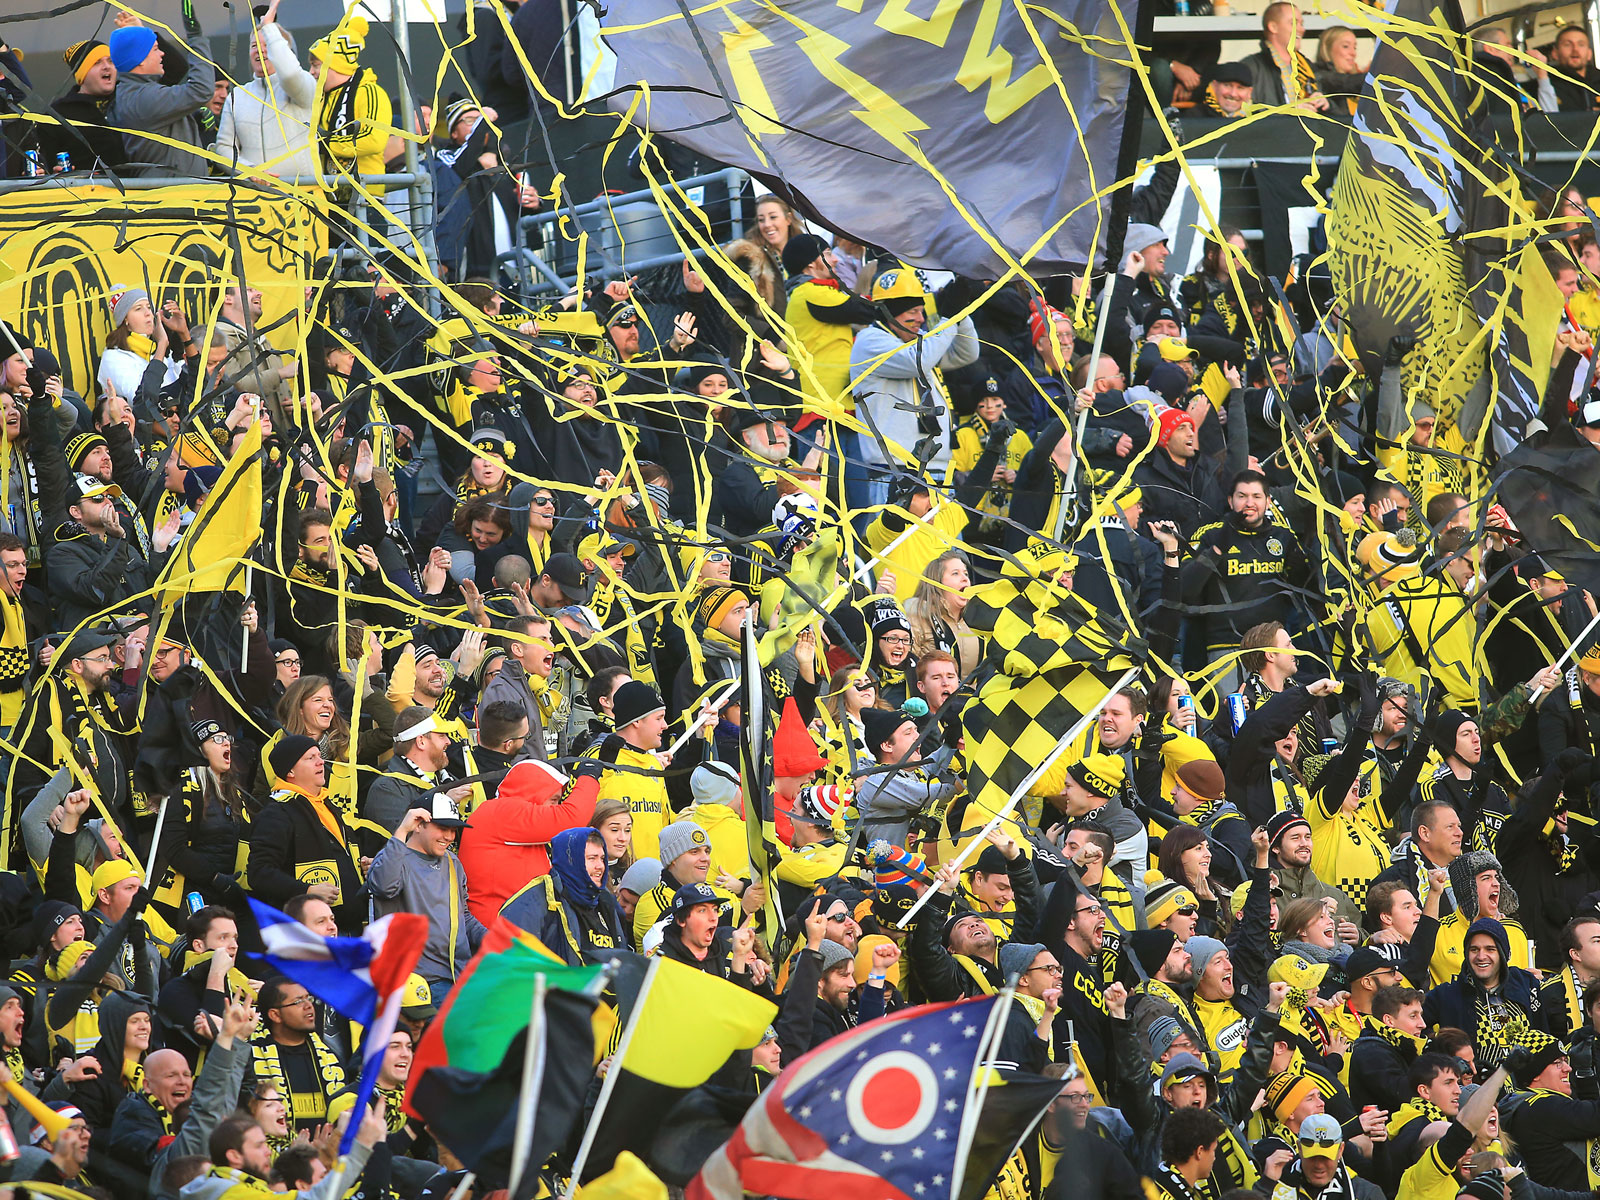 Columbus Crew Will Not Offer Refunds For 2018 Season Tickets